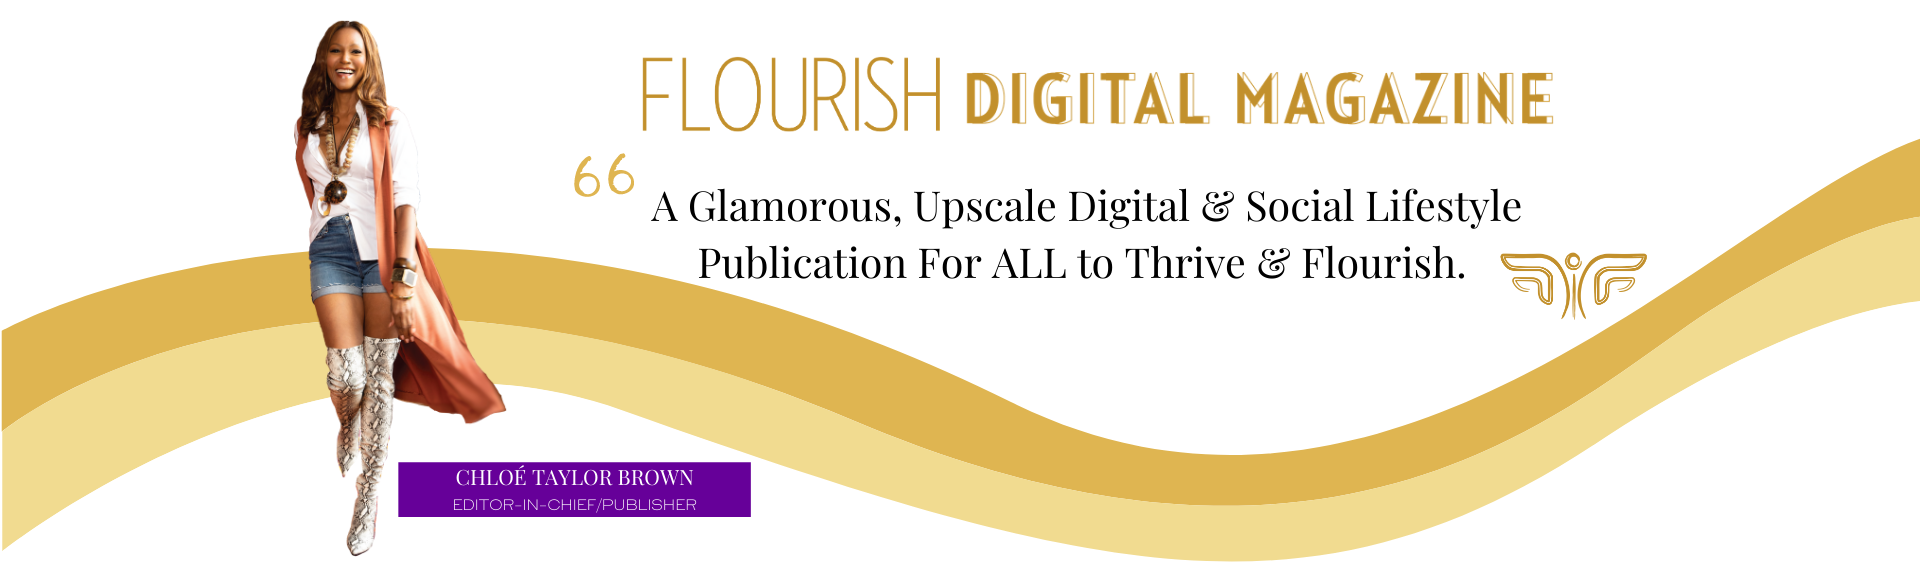 Flourish Digital Magazine Page Divider